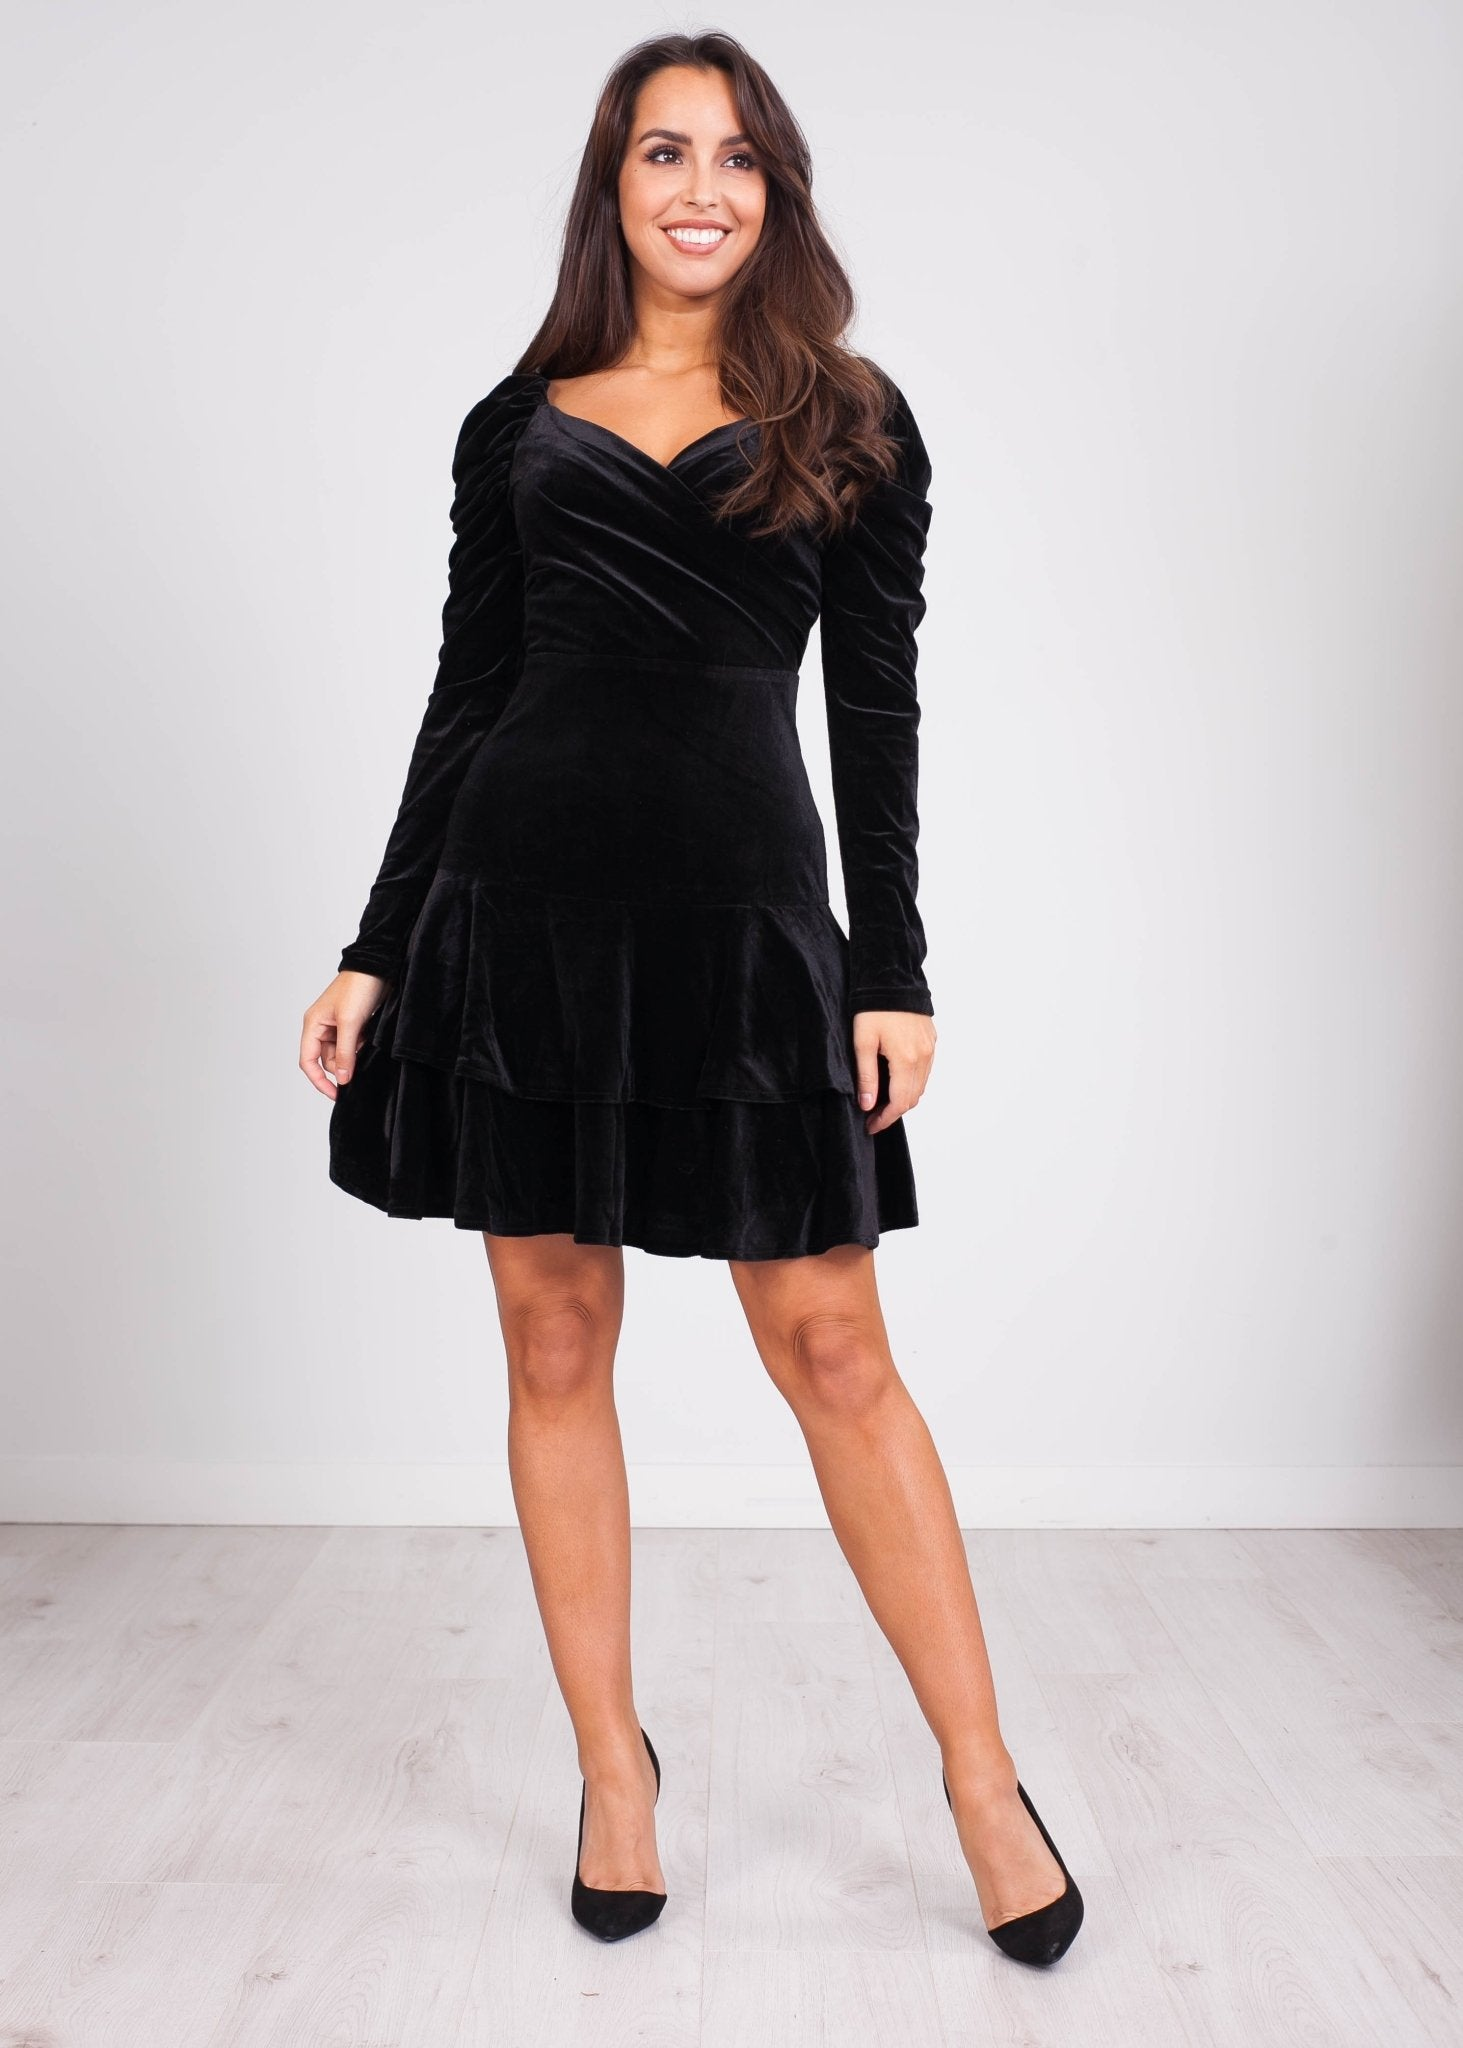 Emilia Black Velvet Mini Dress - The Walk in Wardrobe